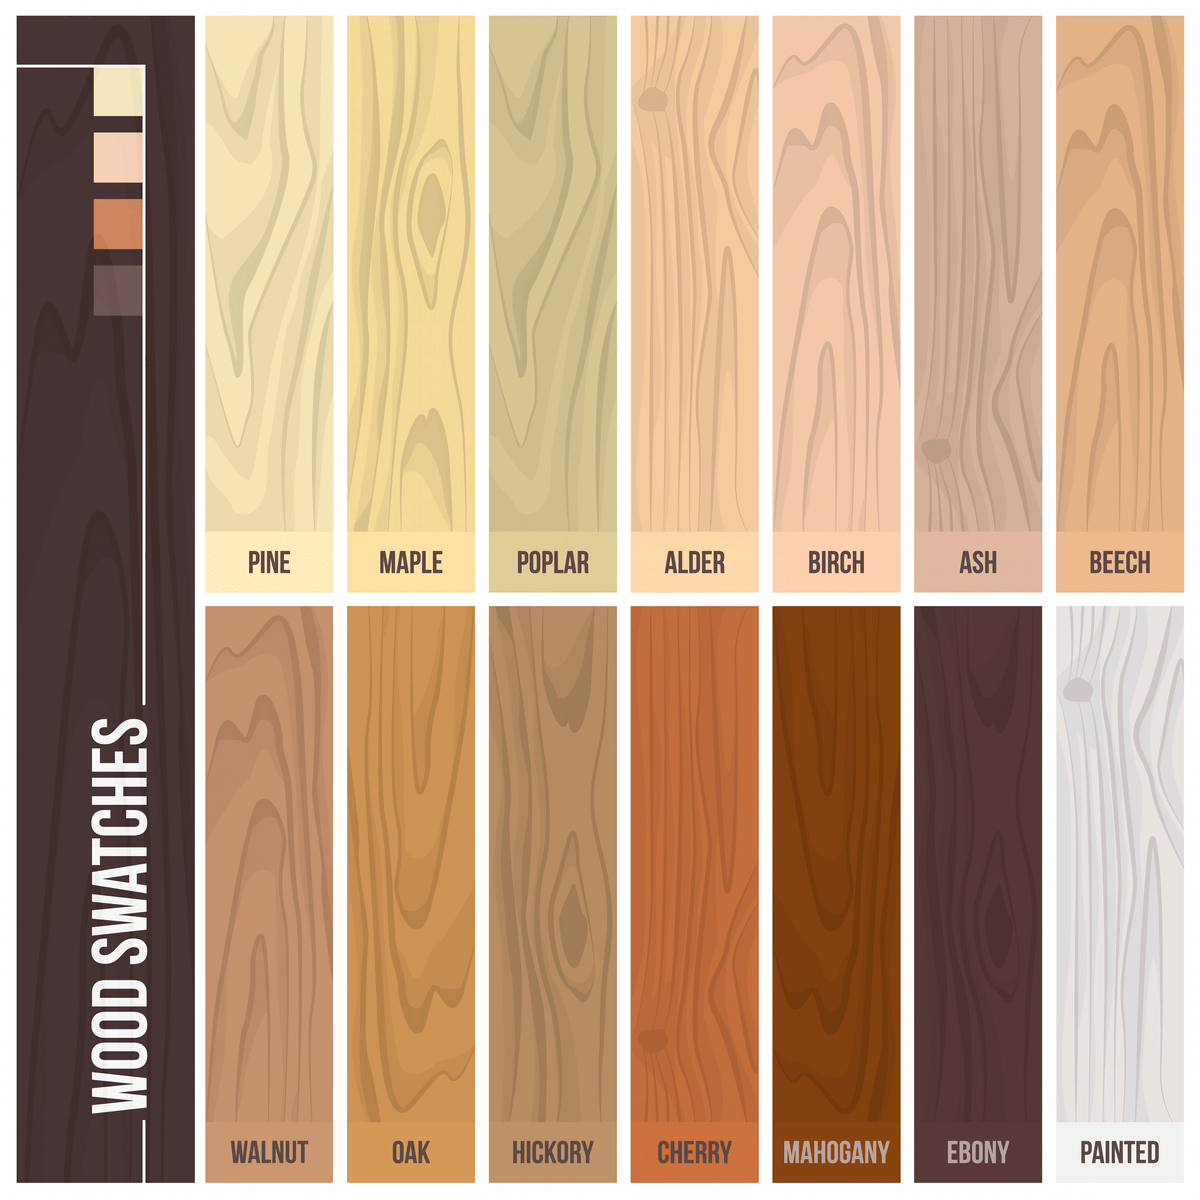 Wood Furniture Colors Chart 16 Types Of Hardwood Flooring Species Styles Edging